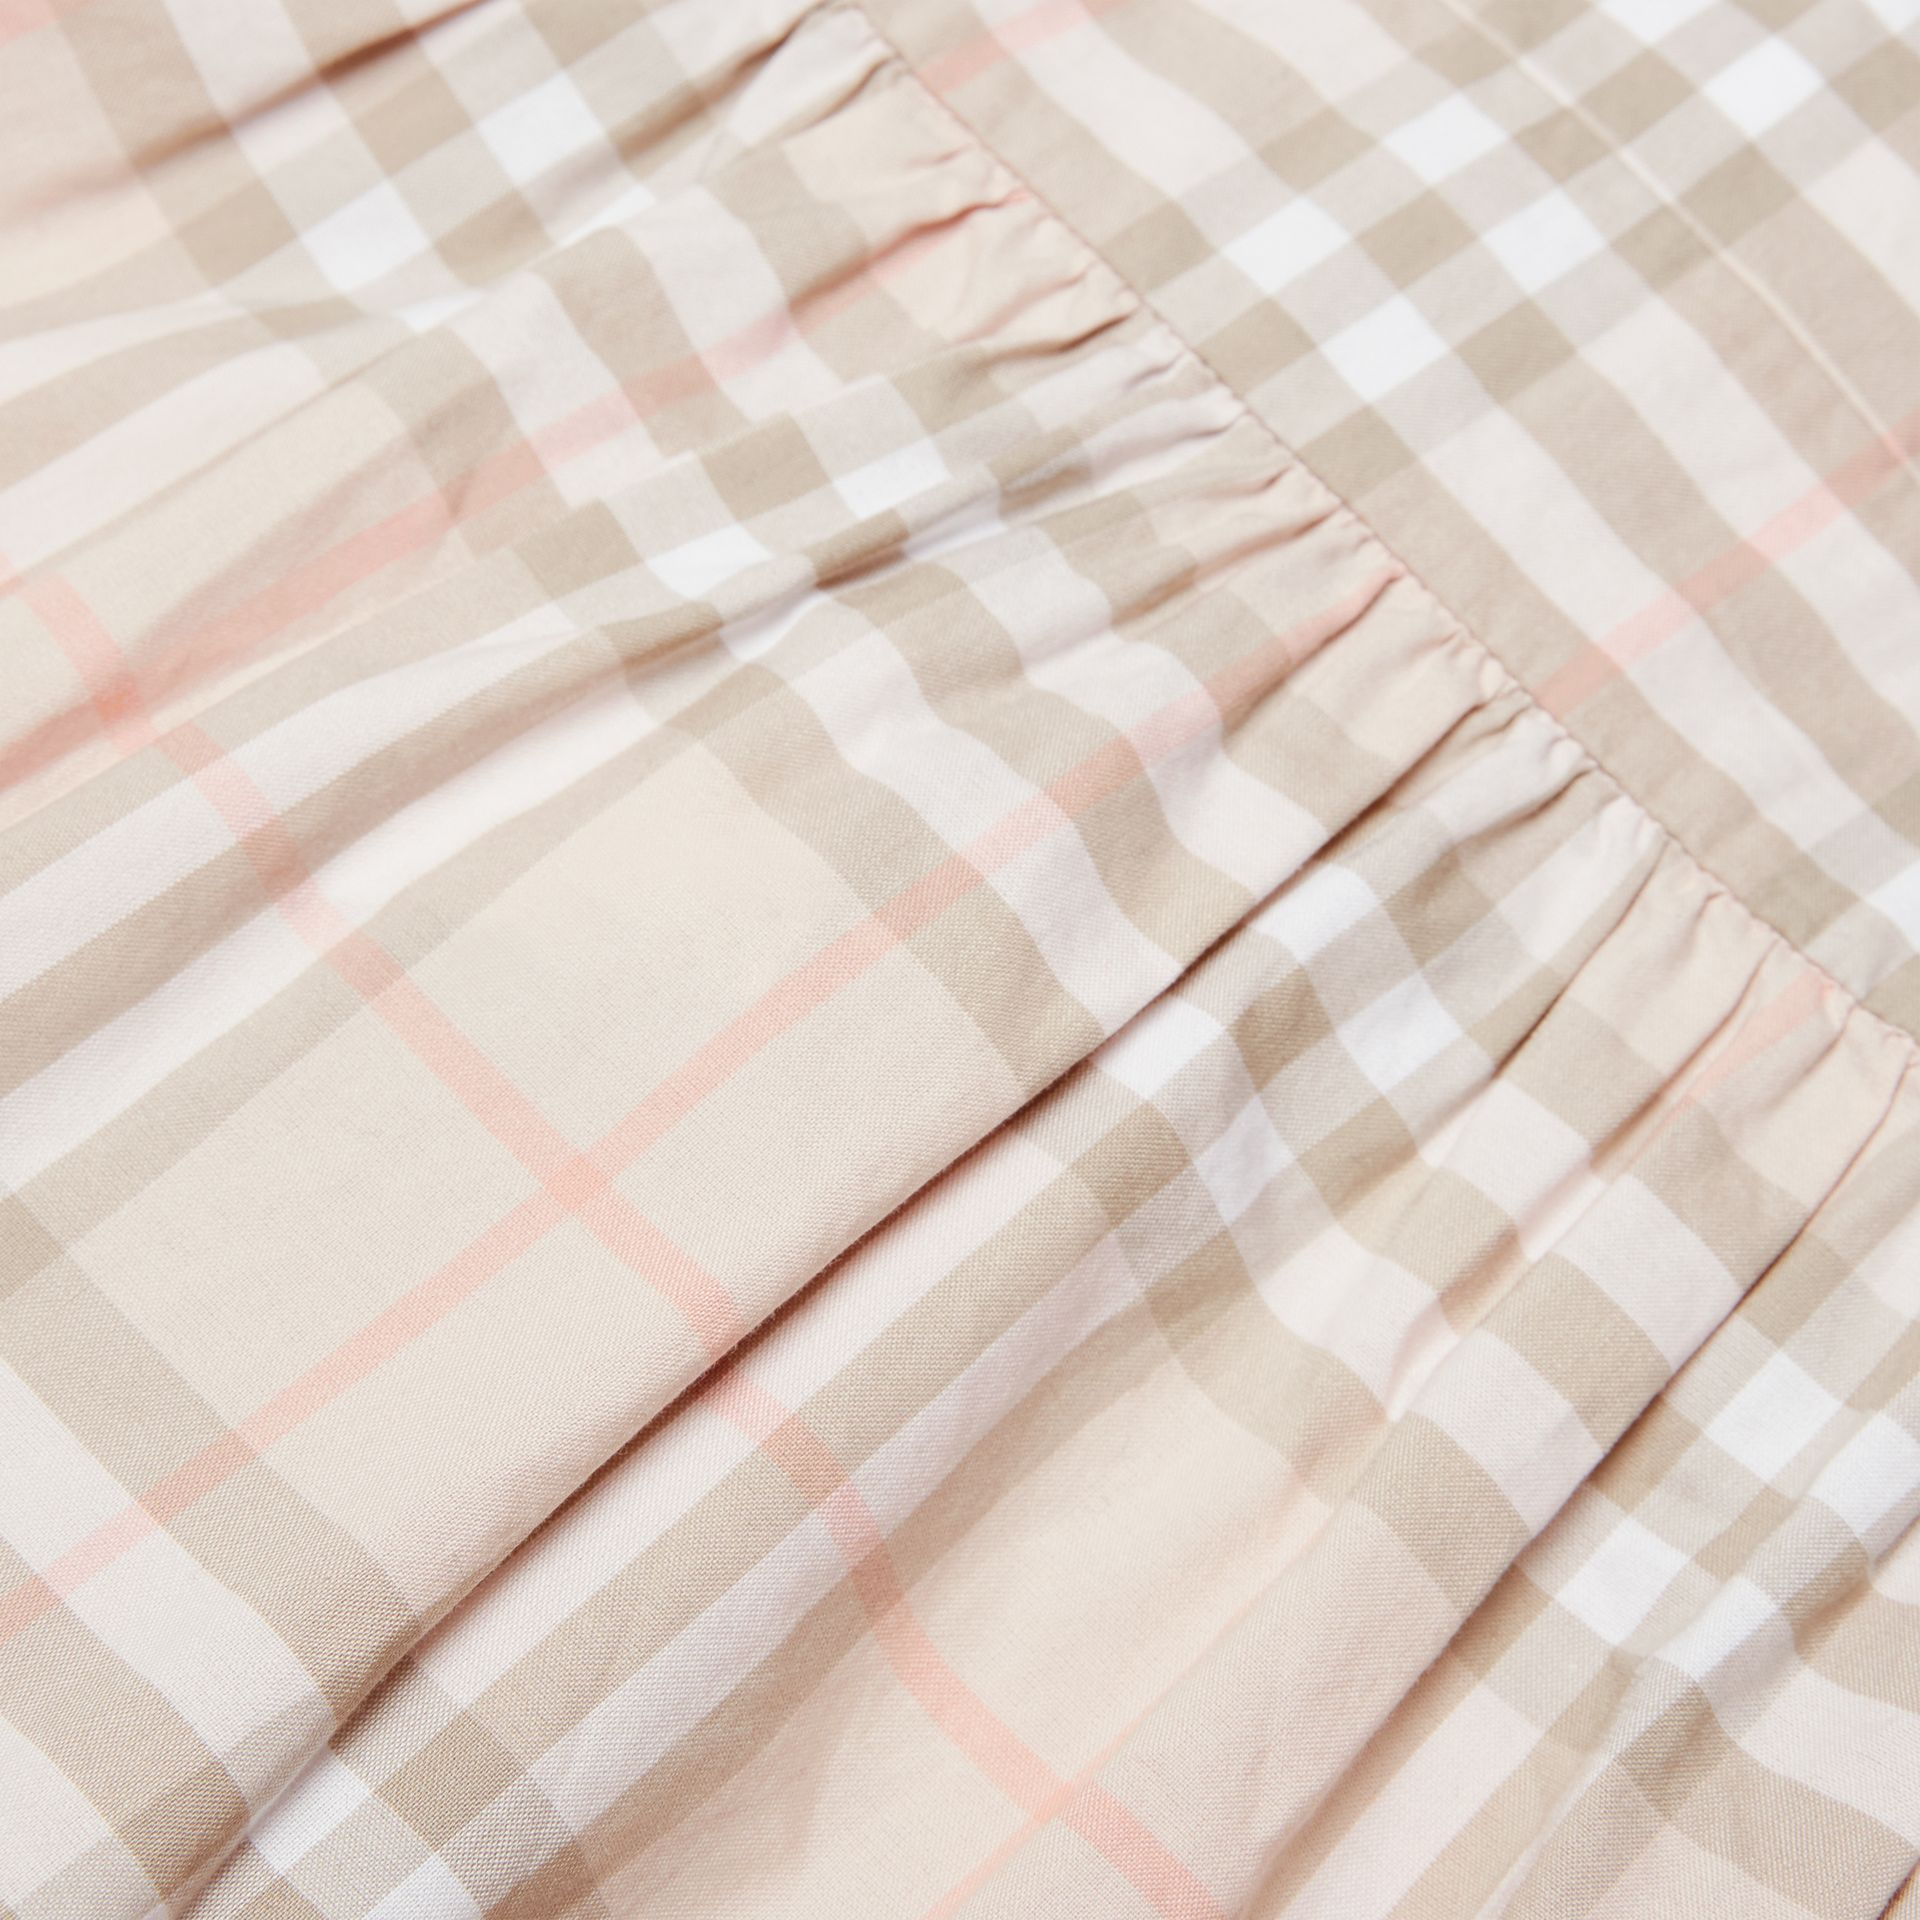 Robe en coton à motif check avec volants (Abricot Rose Pâle) | Burberry - photo de la galerie 1